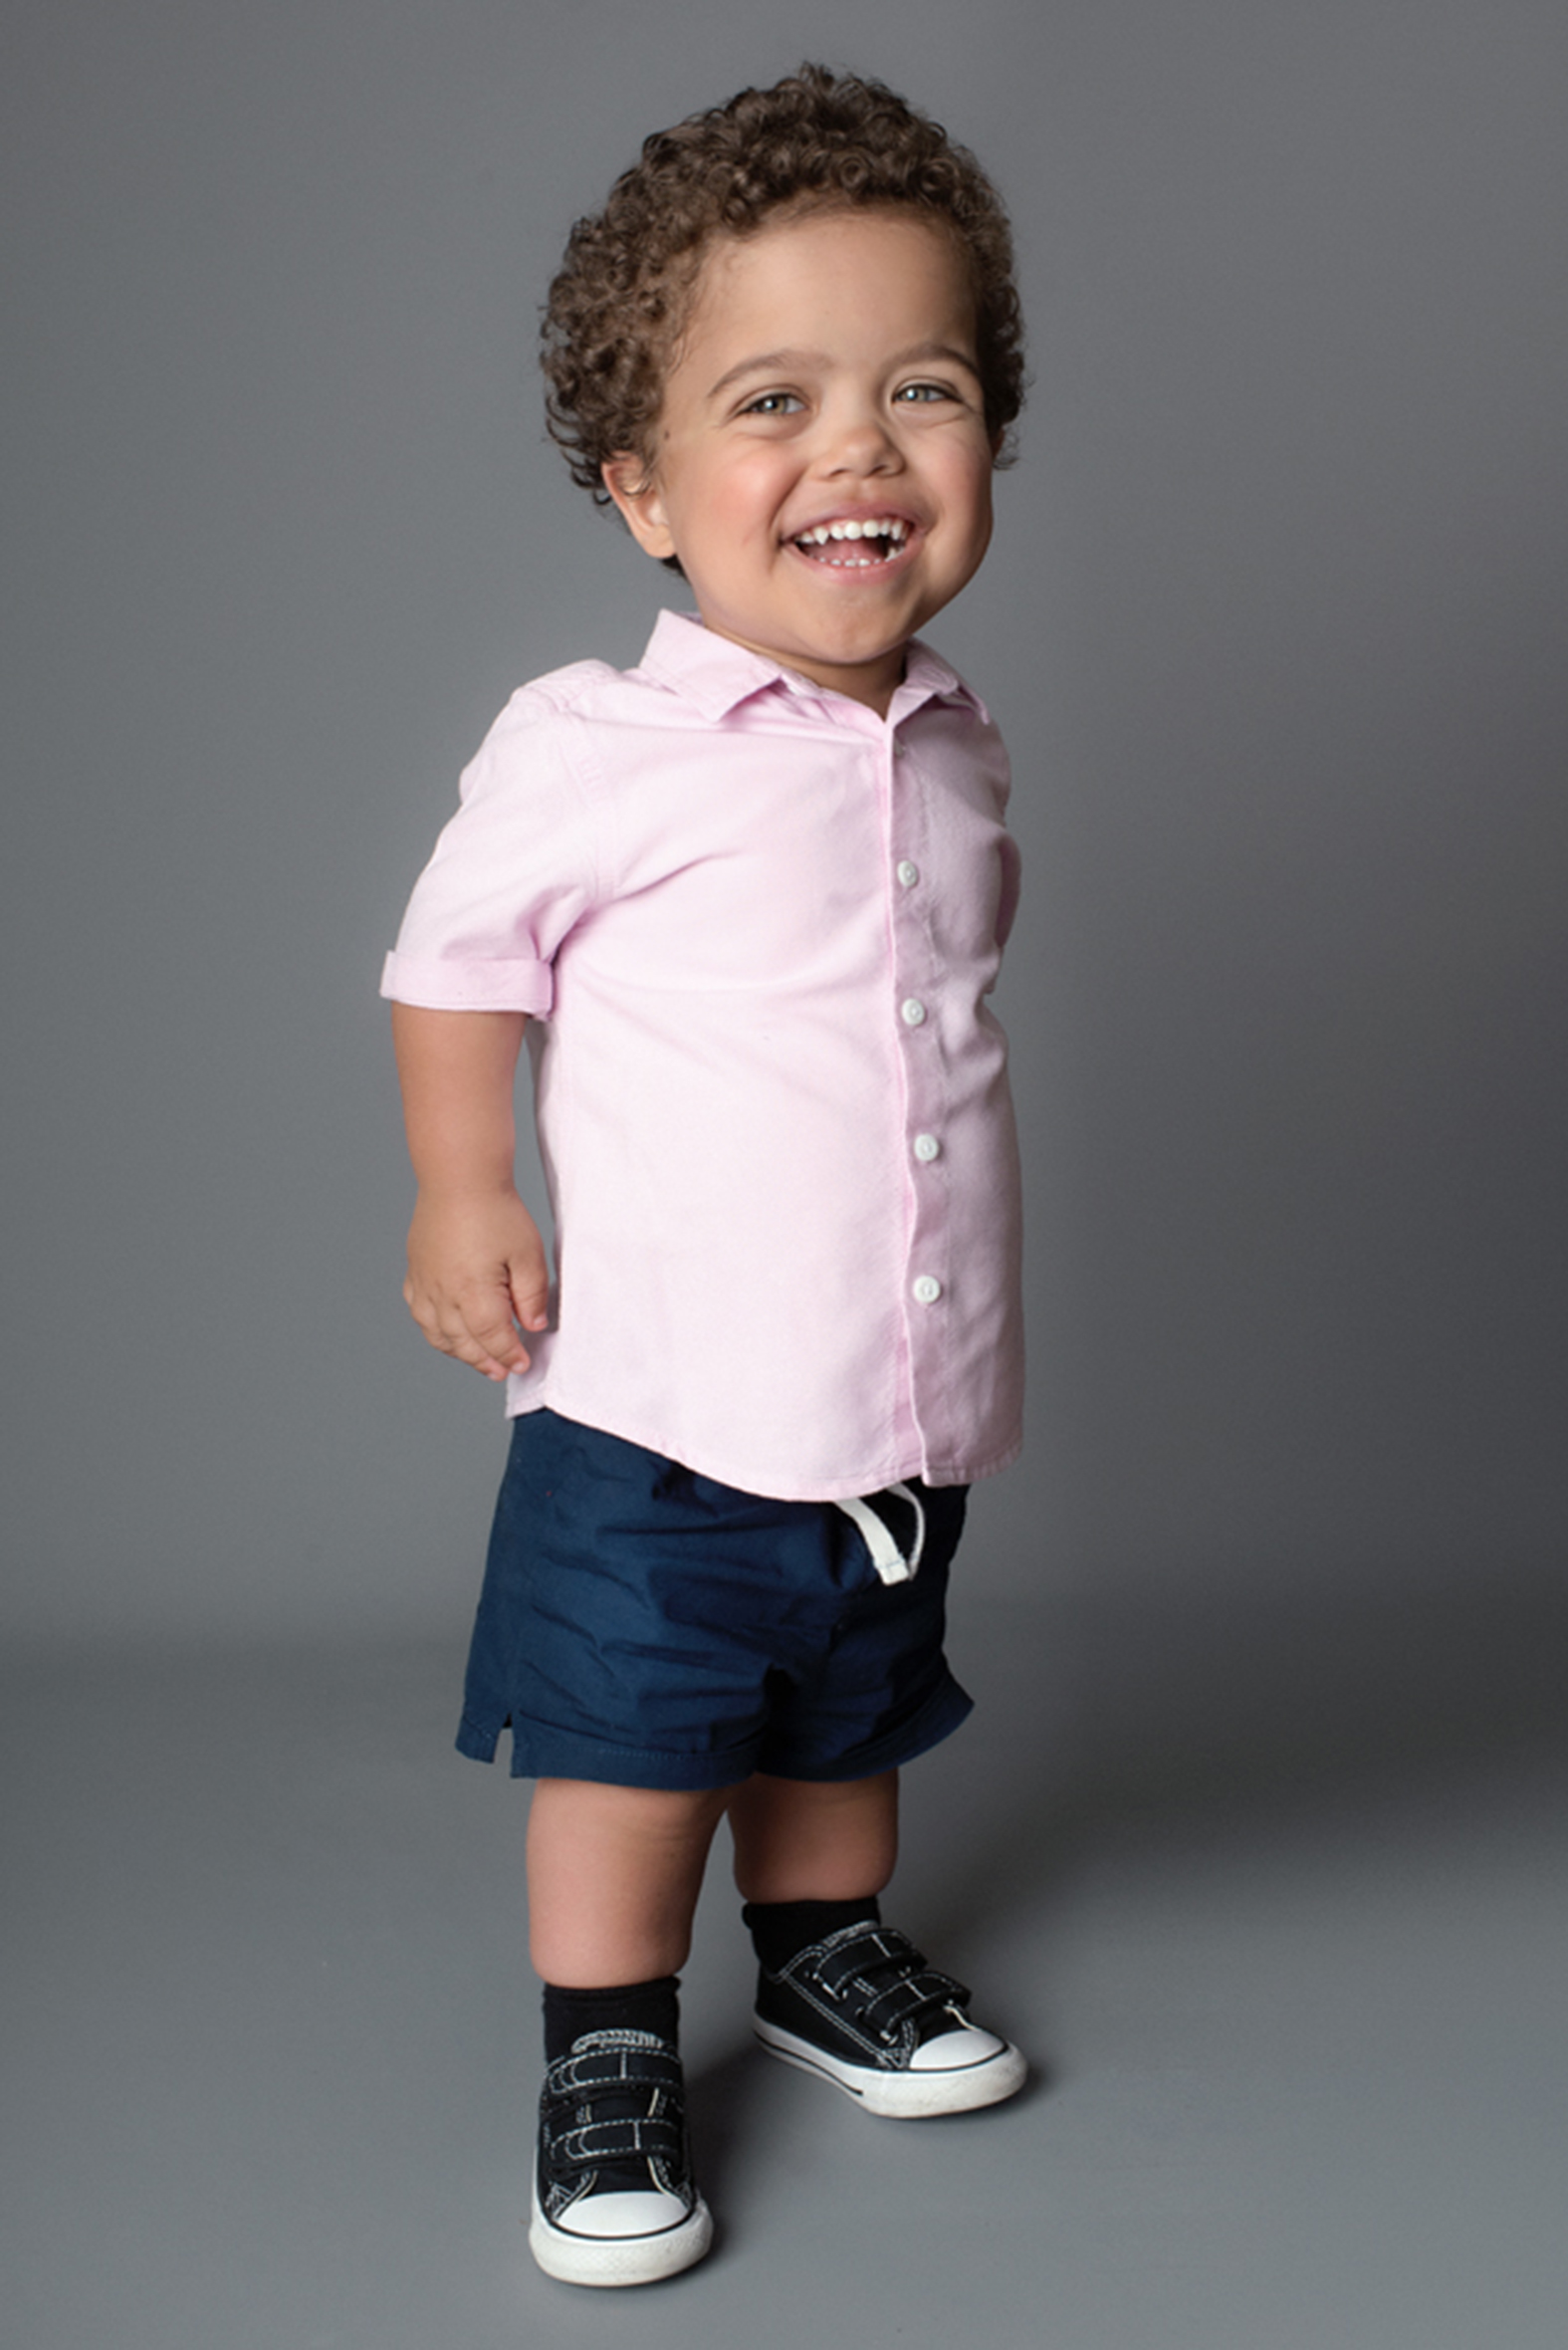 Freddie, Achindroplasia, Zebedee Management, disabled, model agency, disability, baby (1)